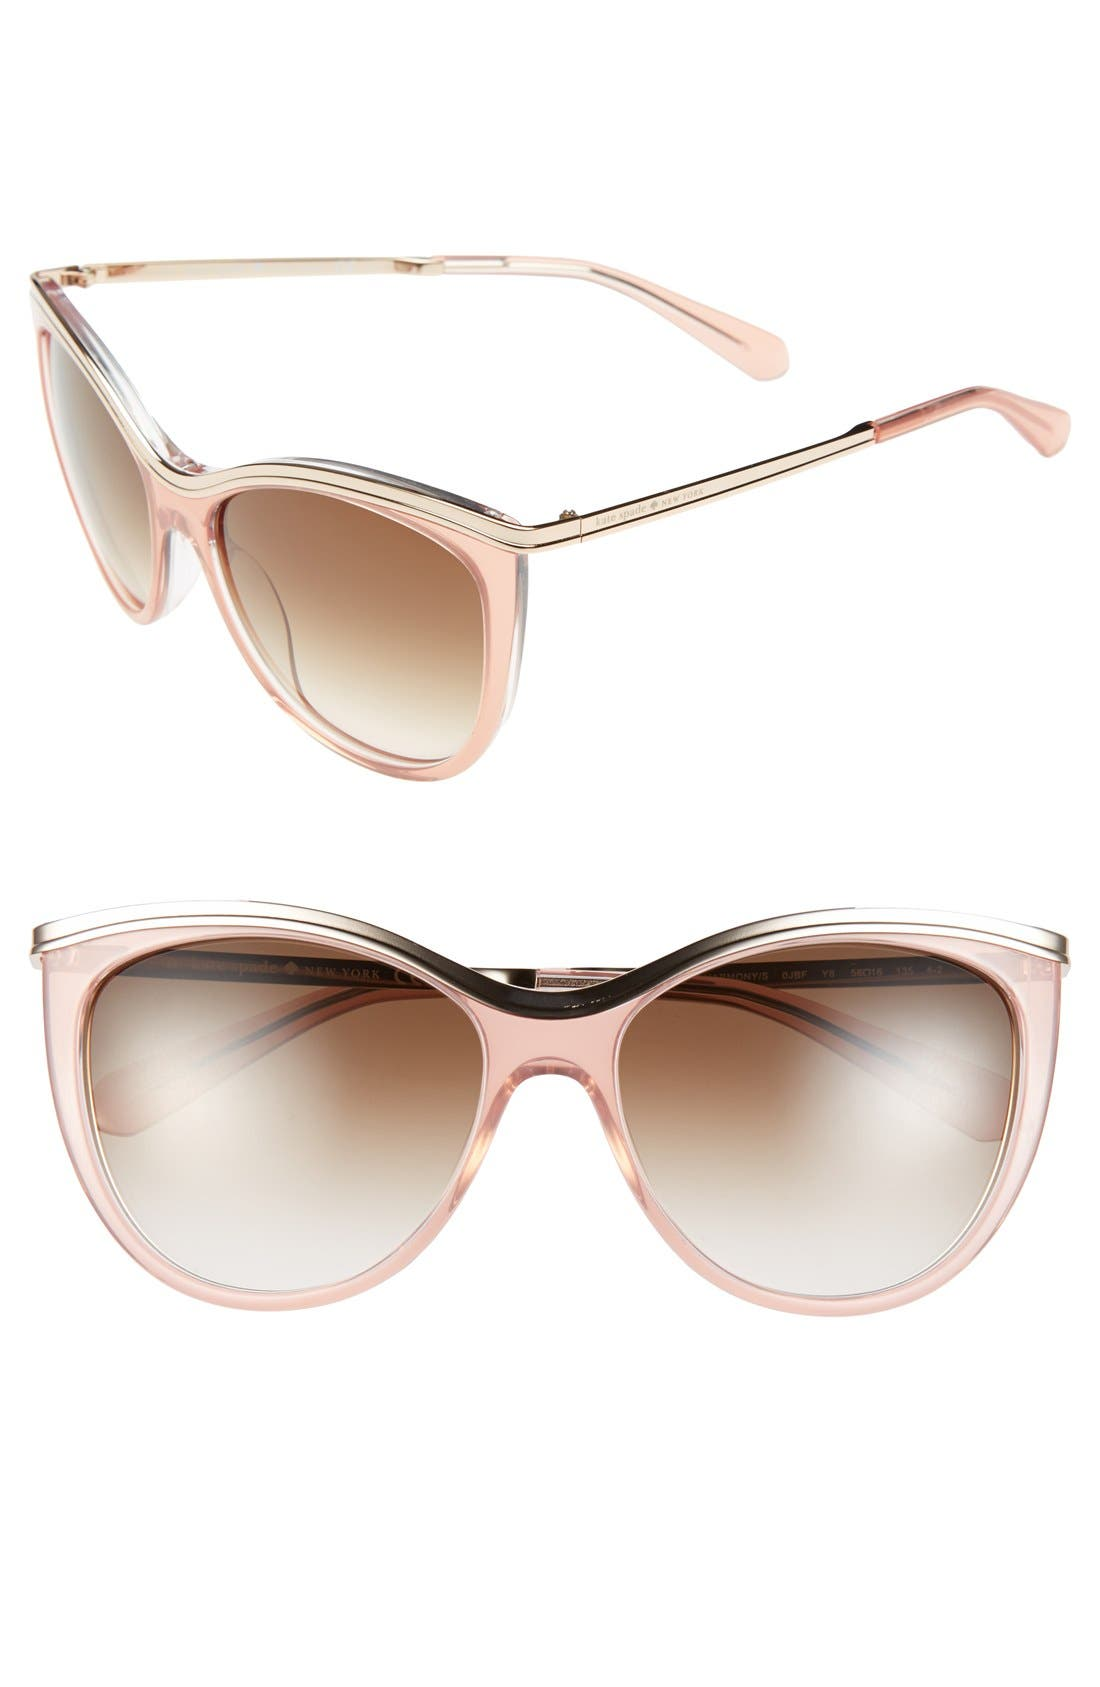 Alternate Image 1 Selected - kate spade new york 56mm cat eye sunglasses